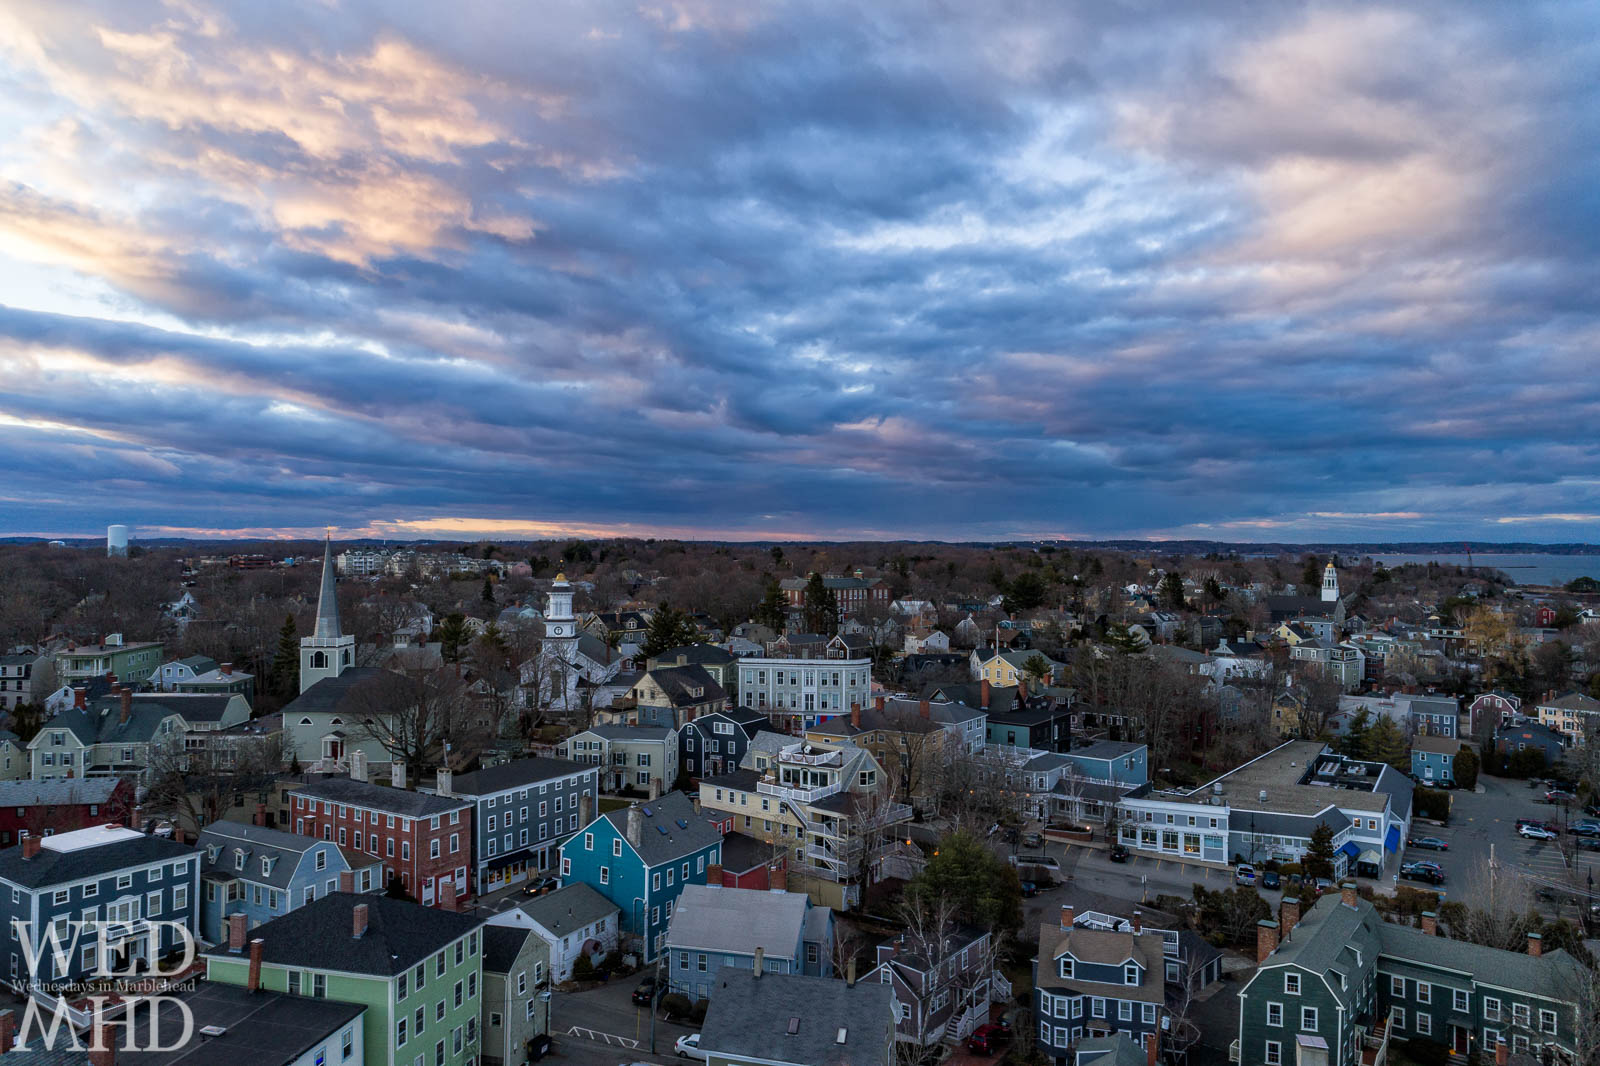 An aerial view of historic downtown Marblehead on a late March evening with a soft sunset reflected in the clouds above